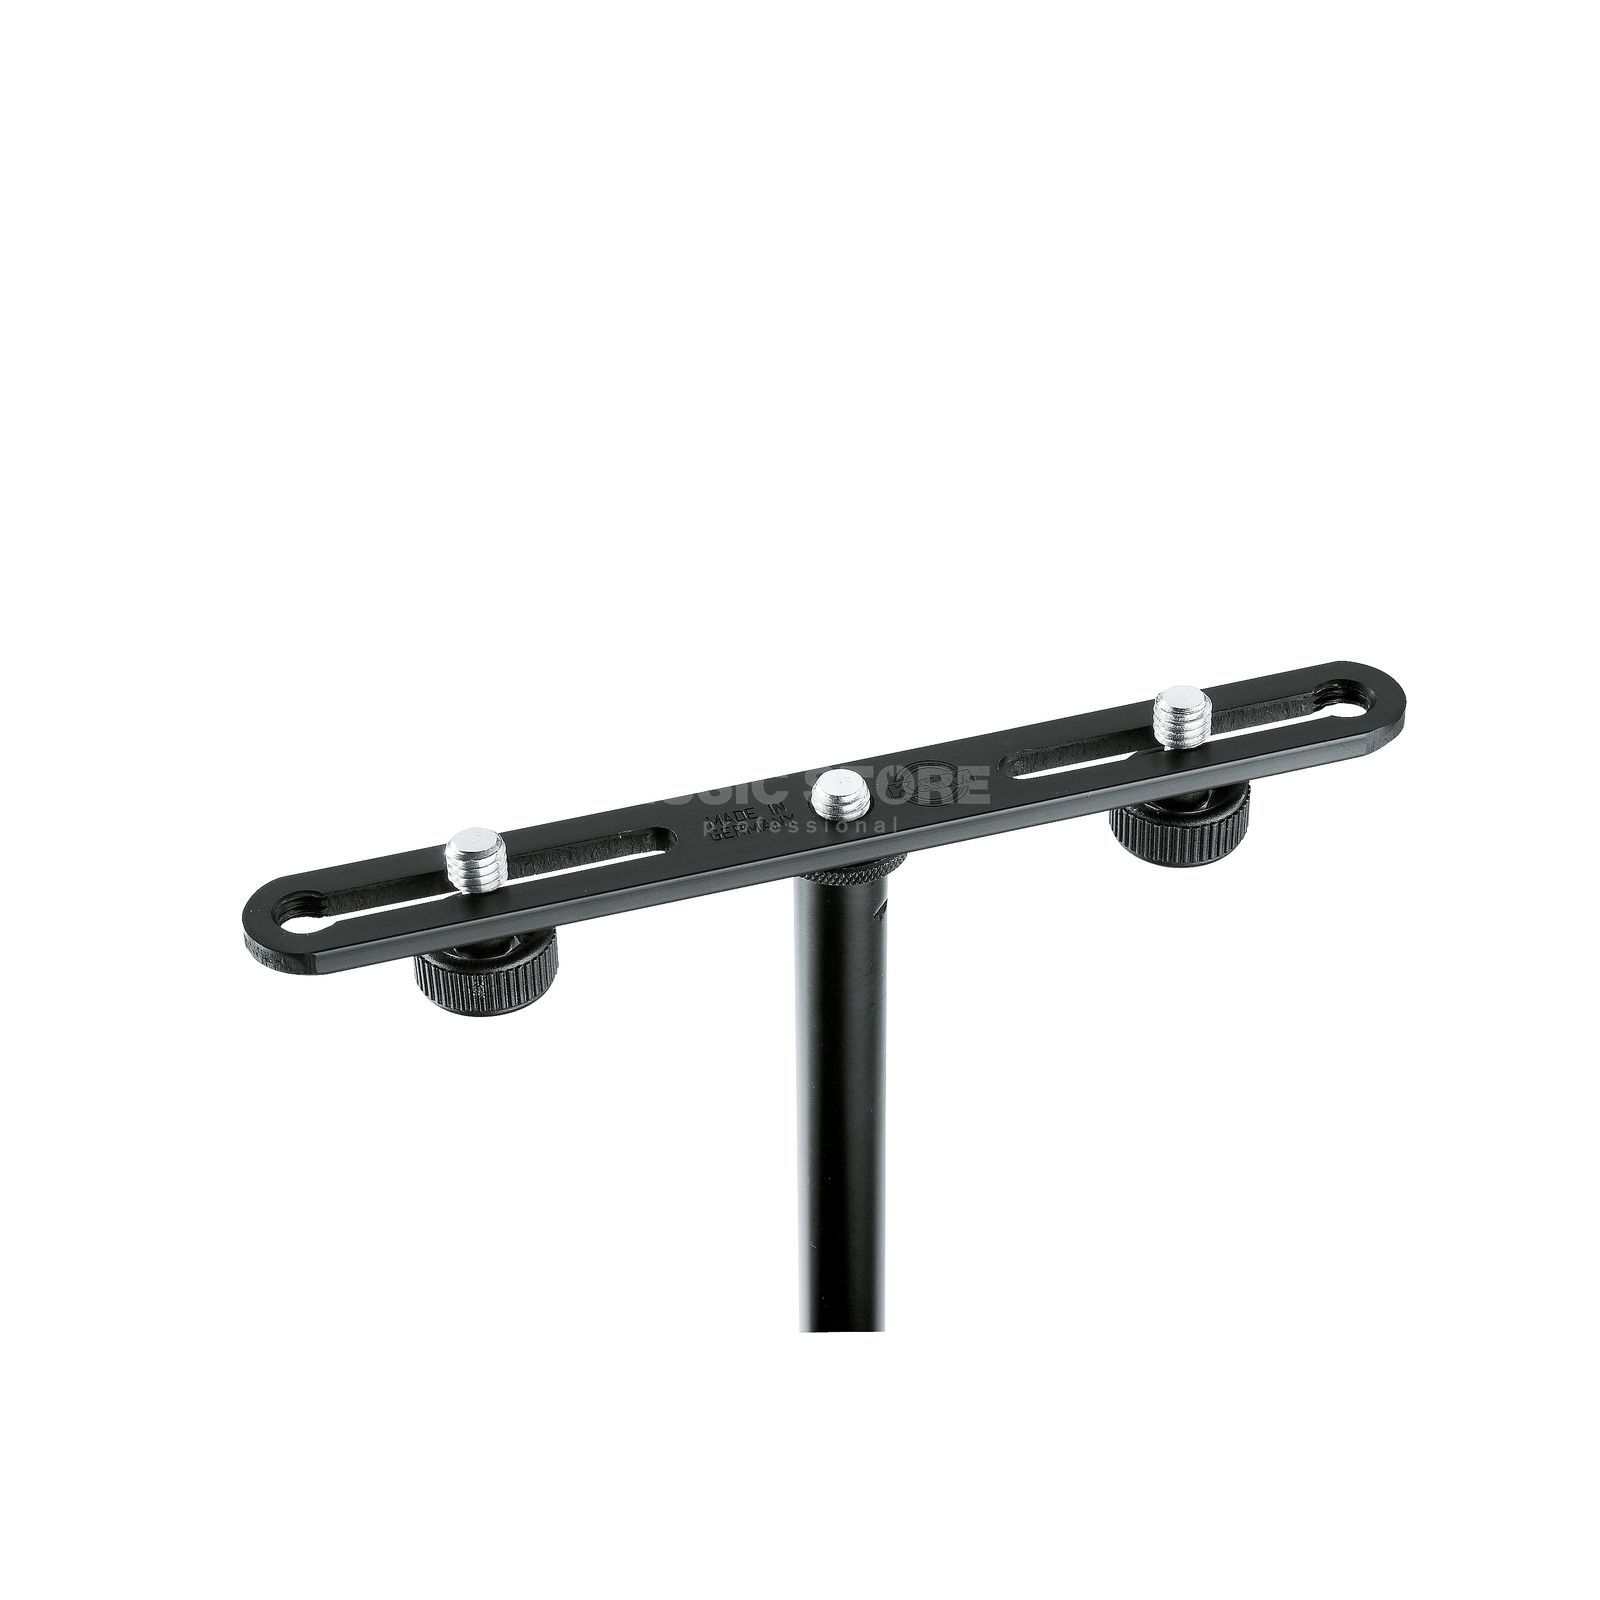 König & Meyer 23550 Microphone Bar 20 cm, Black Produktbillede